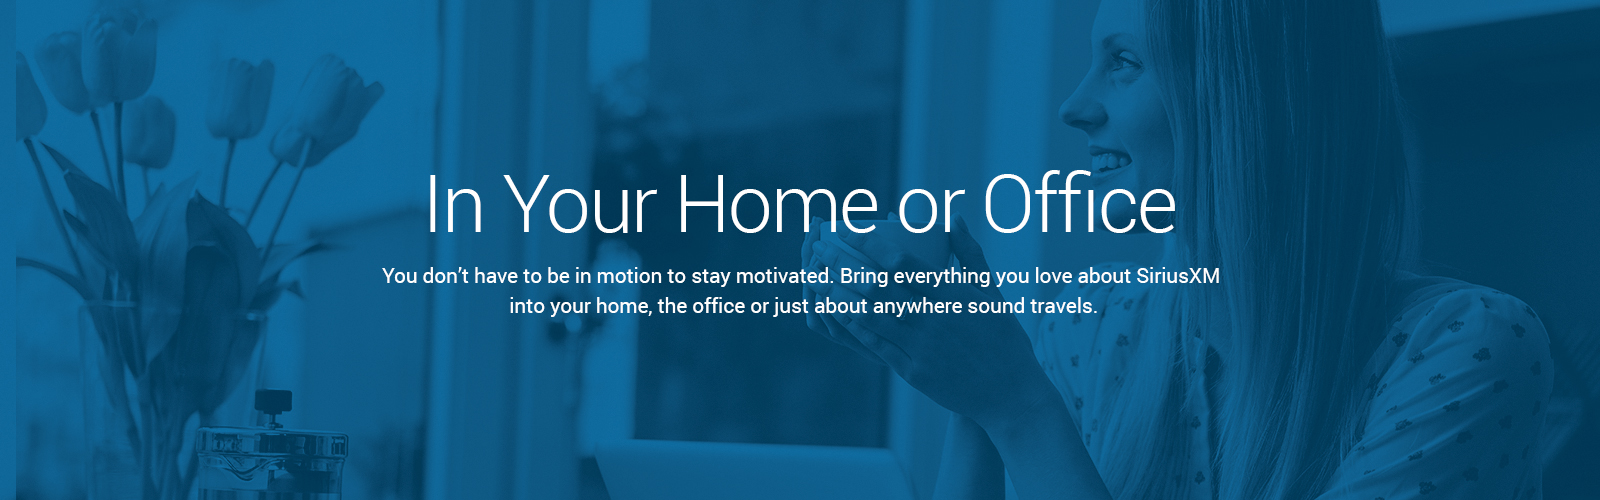 Radios for your Home or Office